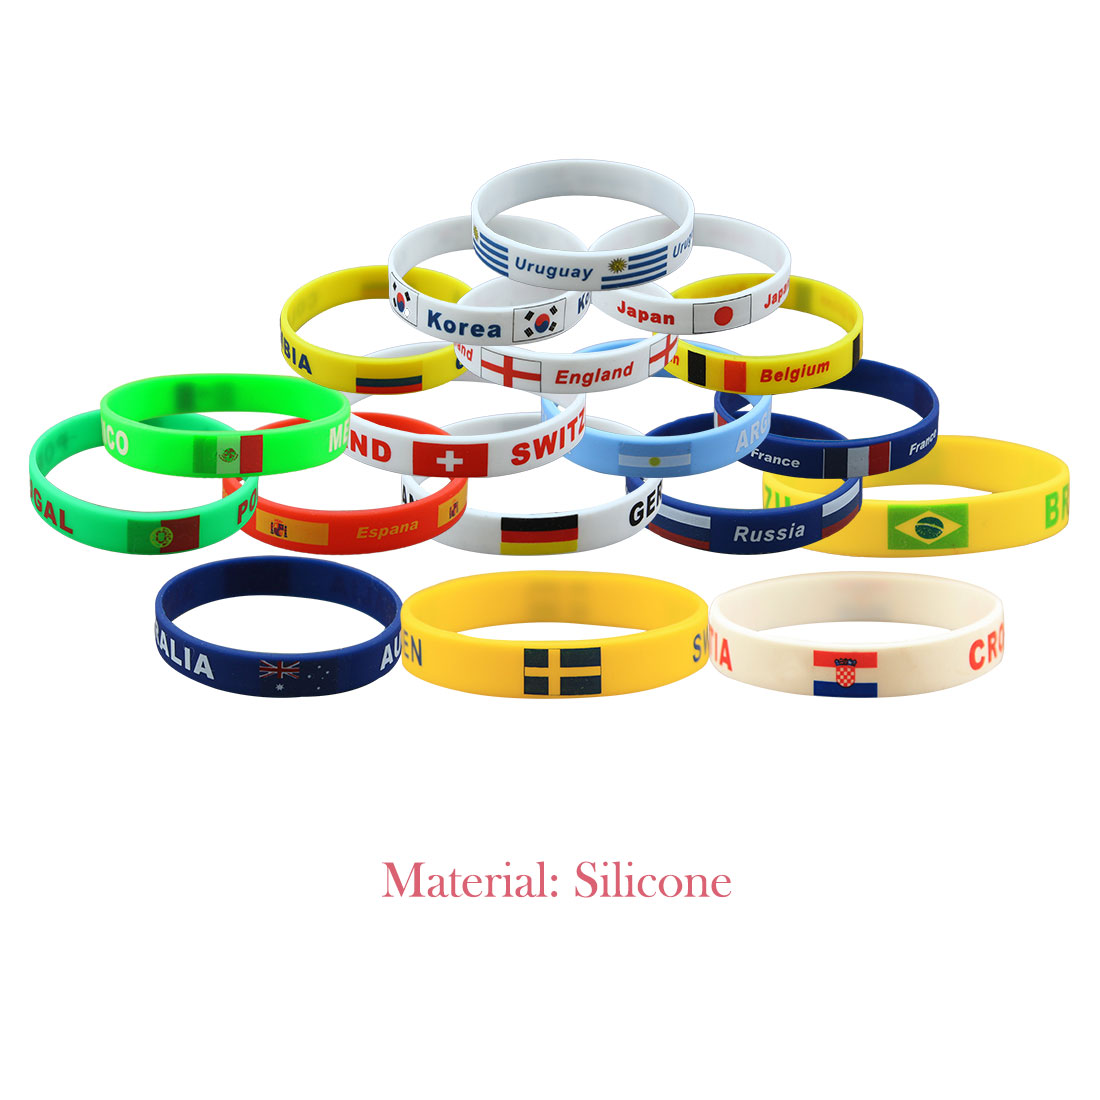 Brand New 1pcs Football Fans Bracelet Soccer Fan Accessories Football Silicone Bracelet Cheerleading Supplies